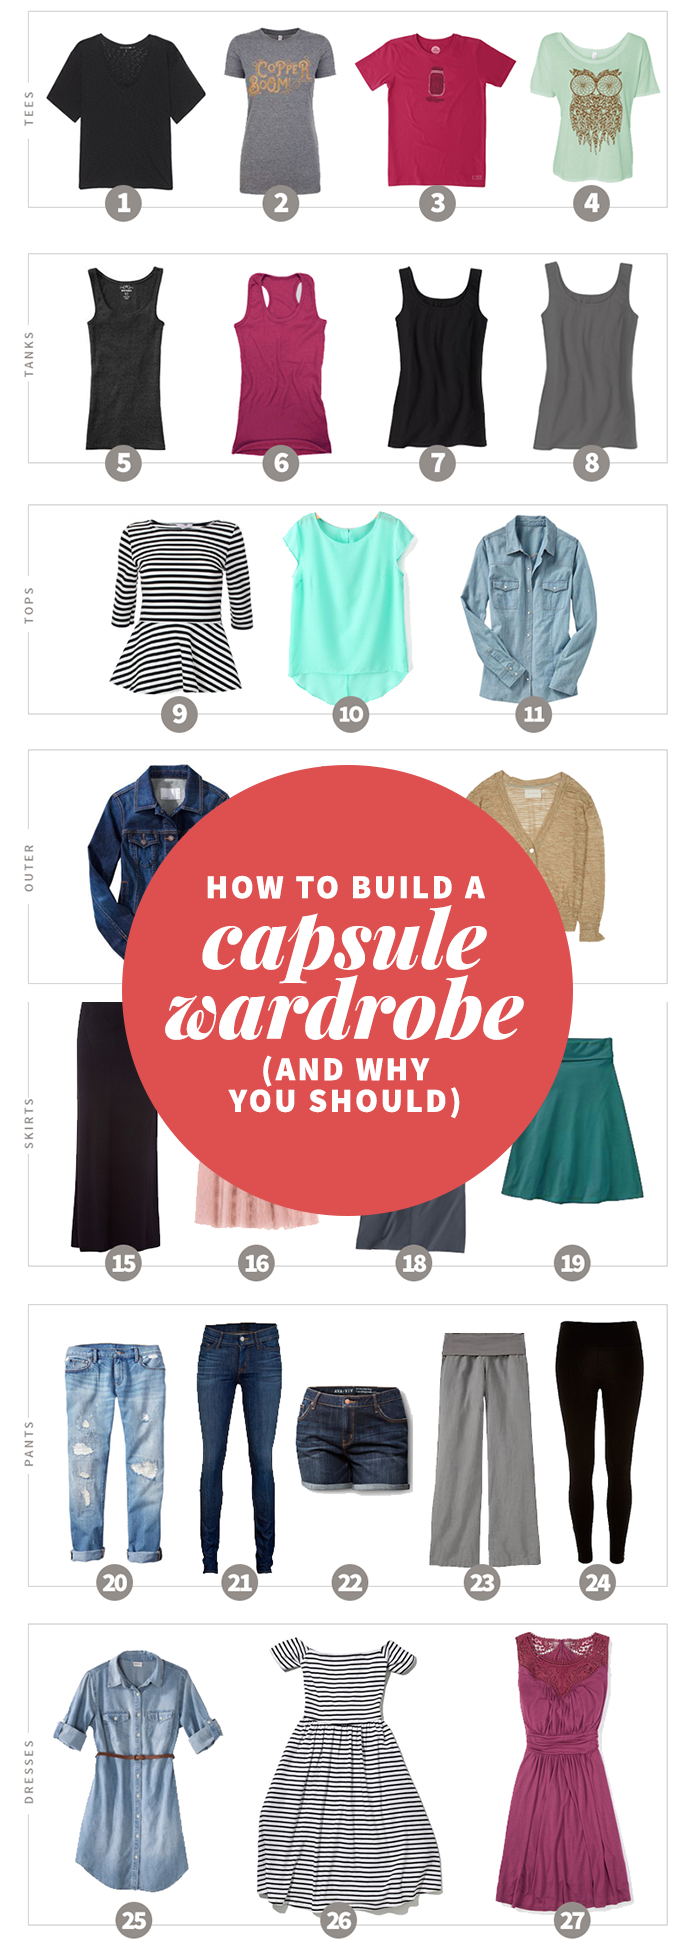 How To Build A Capsule Wardrobe (And Why You Should